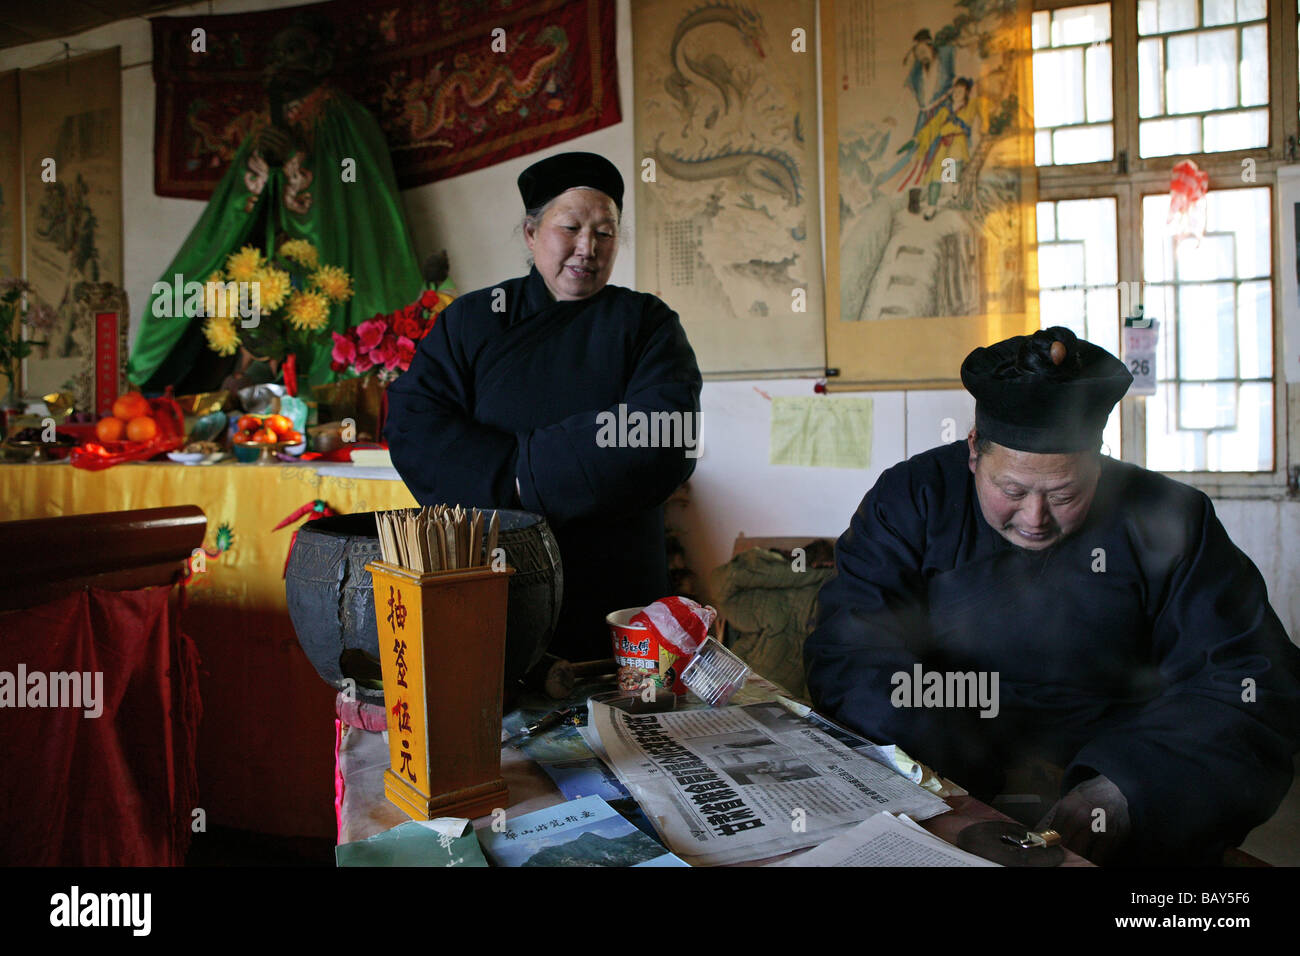 A monk and a nun at the monastery at Golden Lock Pass, Hua Shan, Shaanxi province, China, Asia - Stock Image